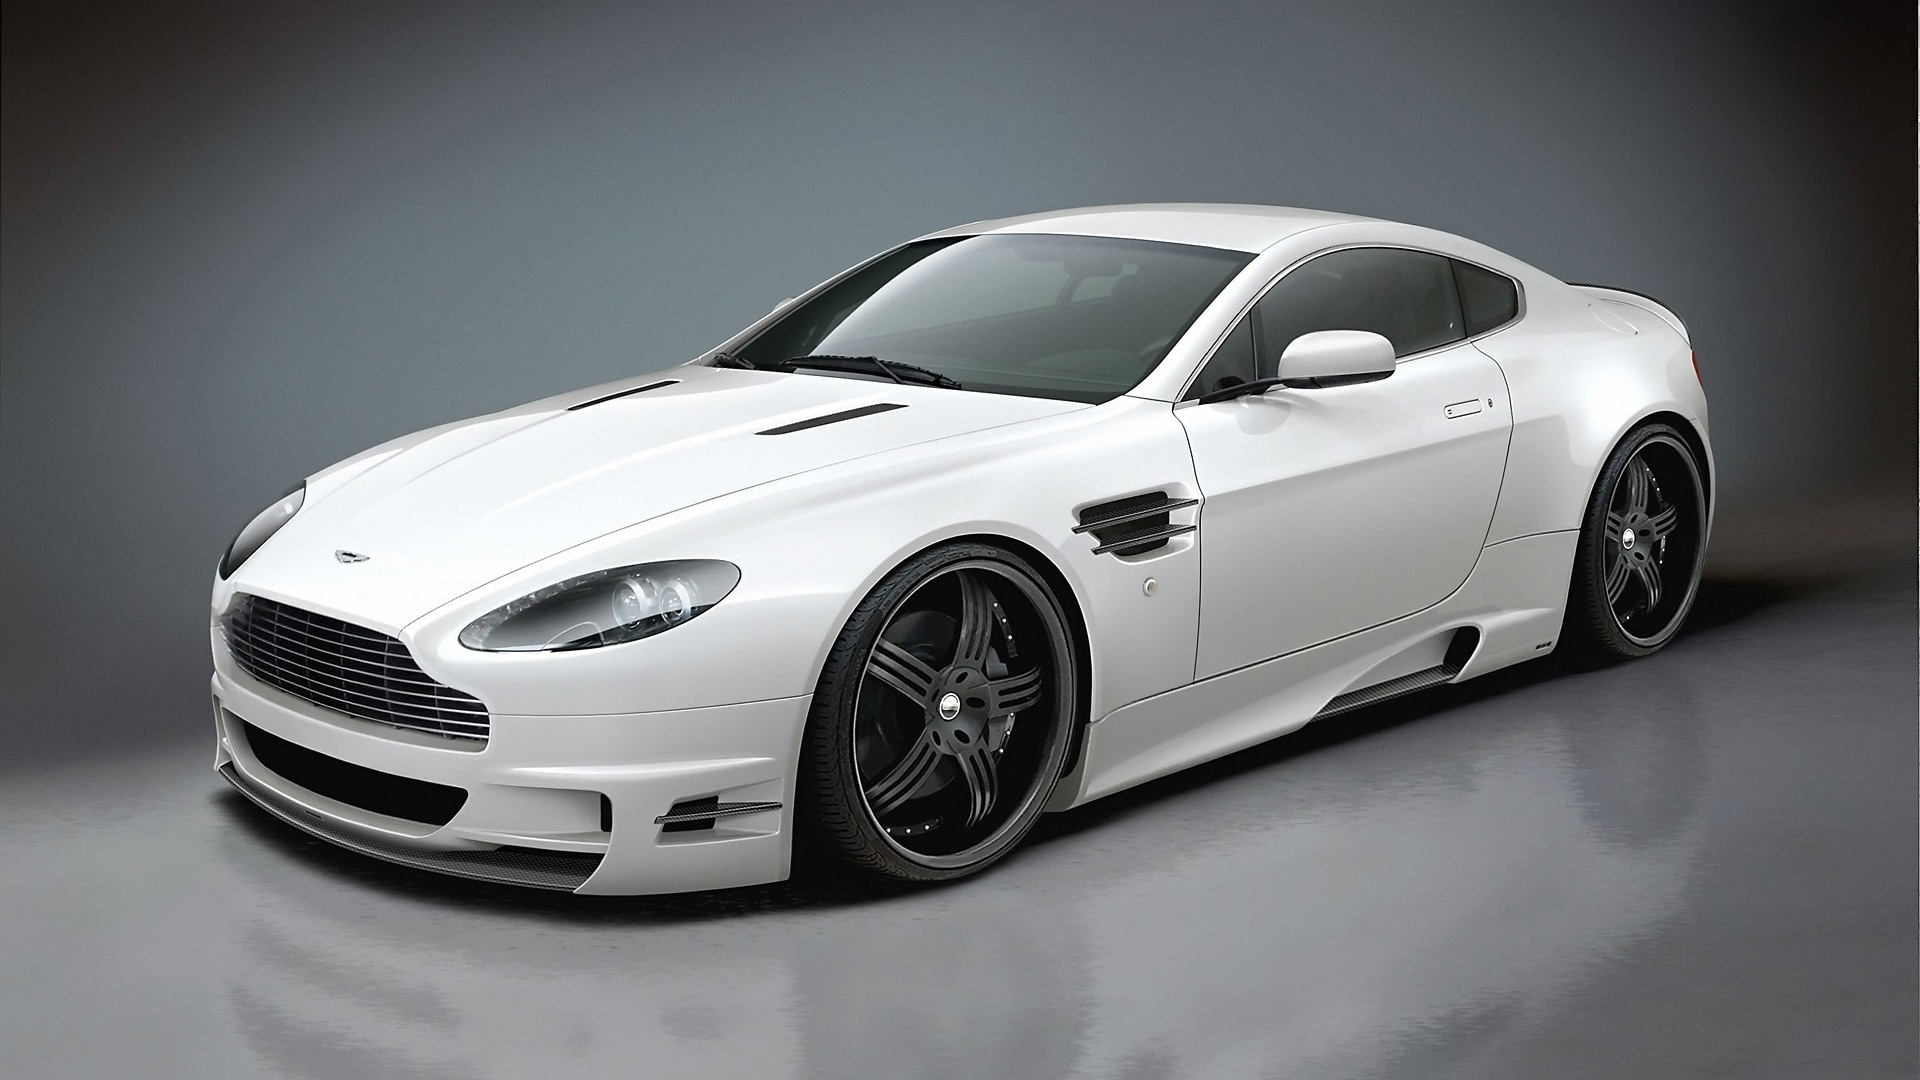 Car Wallpapers: Aston Martin V8 Vantage